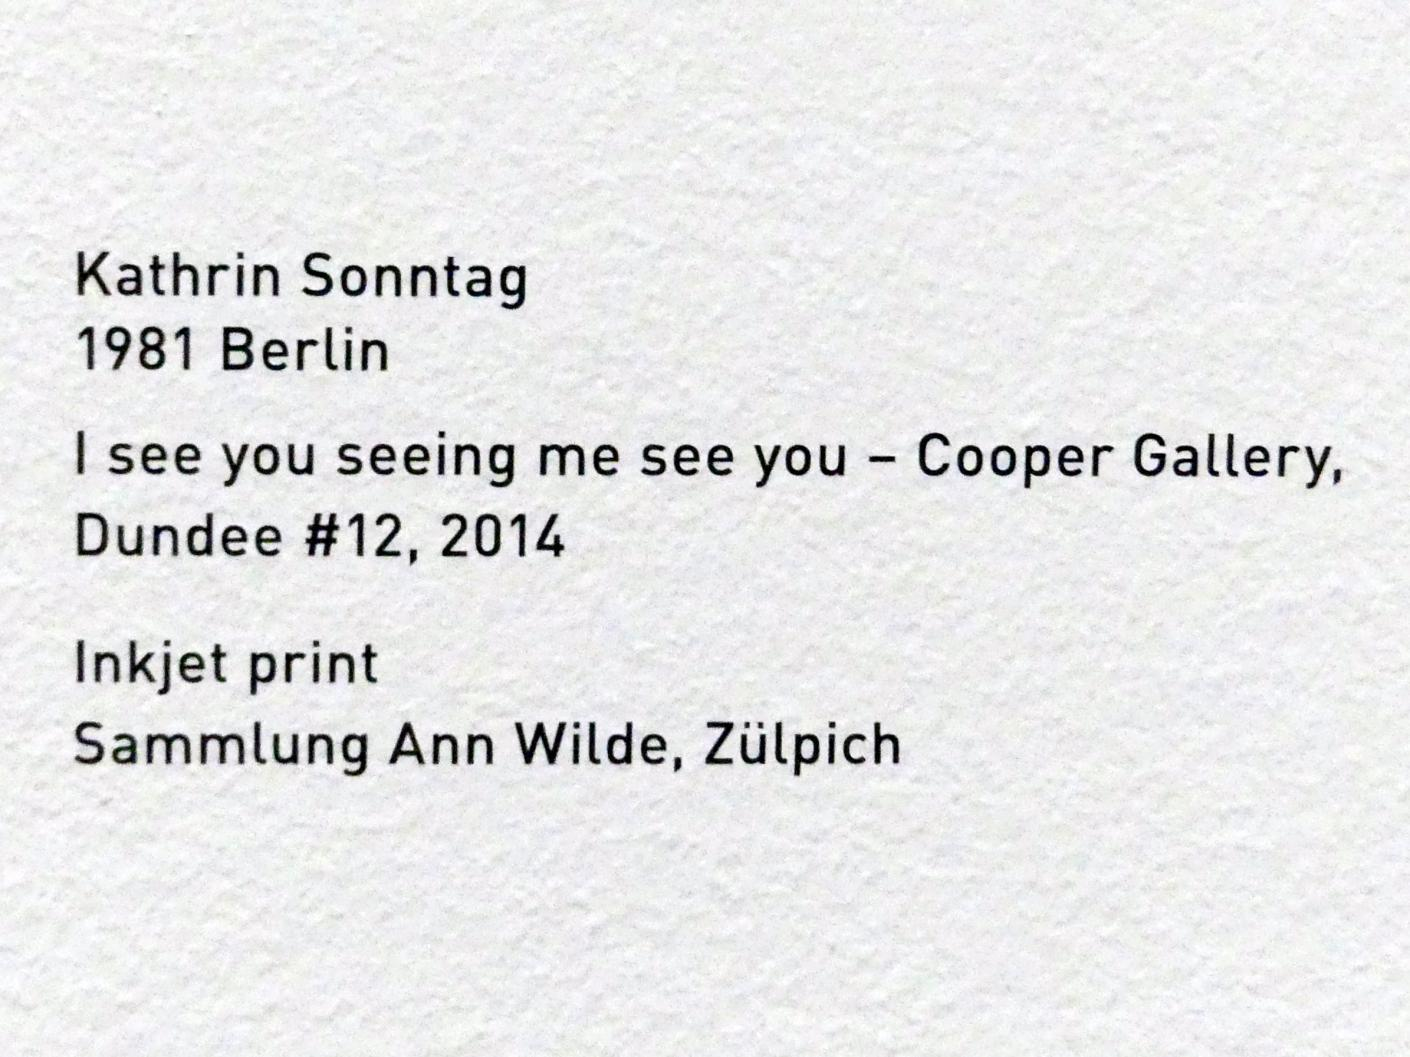 Kathrin Sonntag: I see you seeing me see you - Cooper Gallery Dundee #12, 2014, Bild 2/2